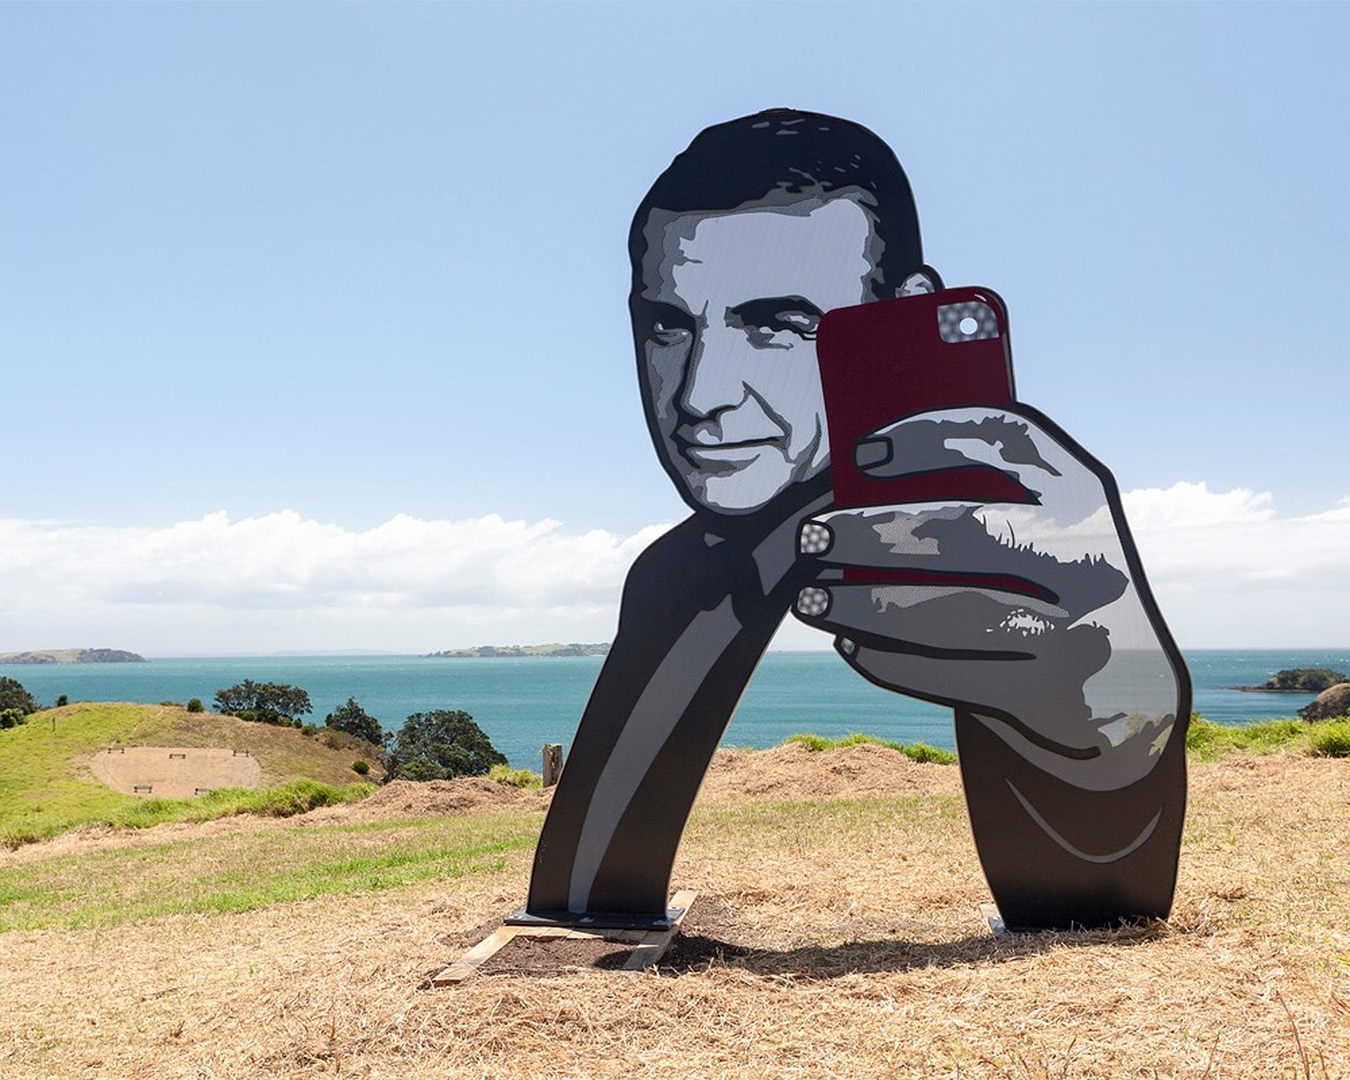 Sculpture on the gulf shows Roger Moore taking a selfie.